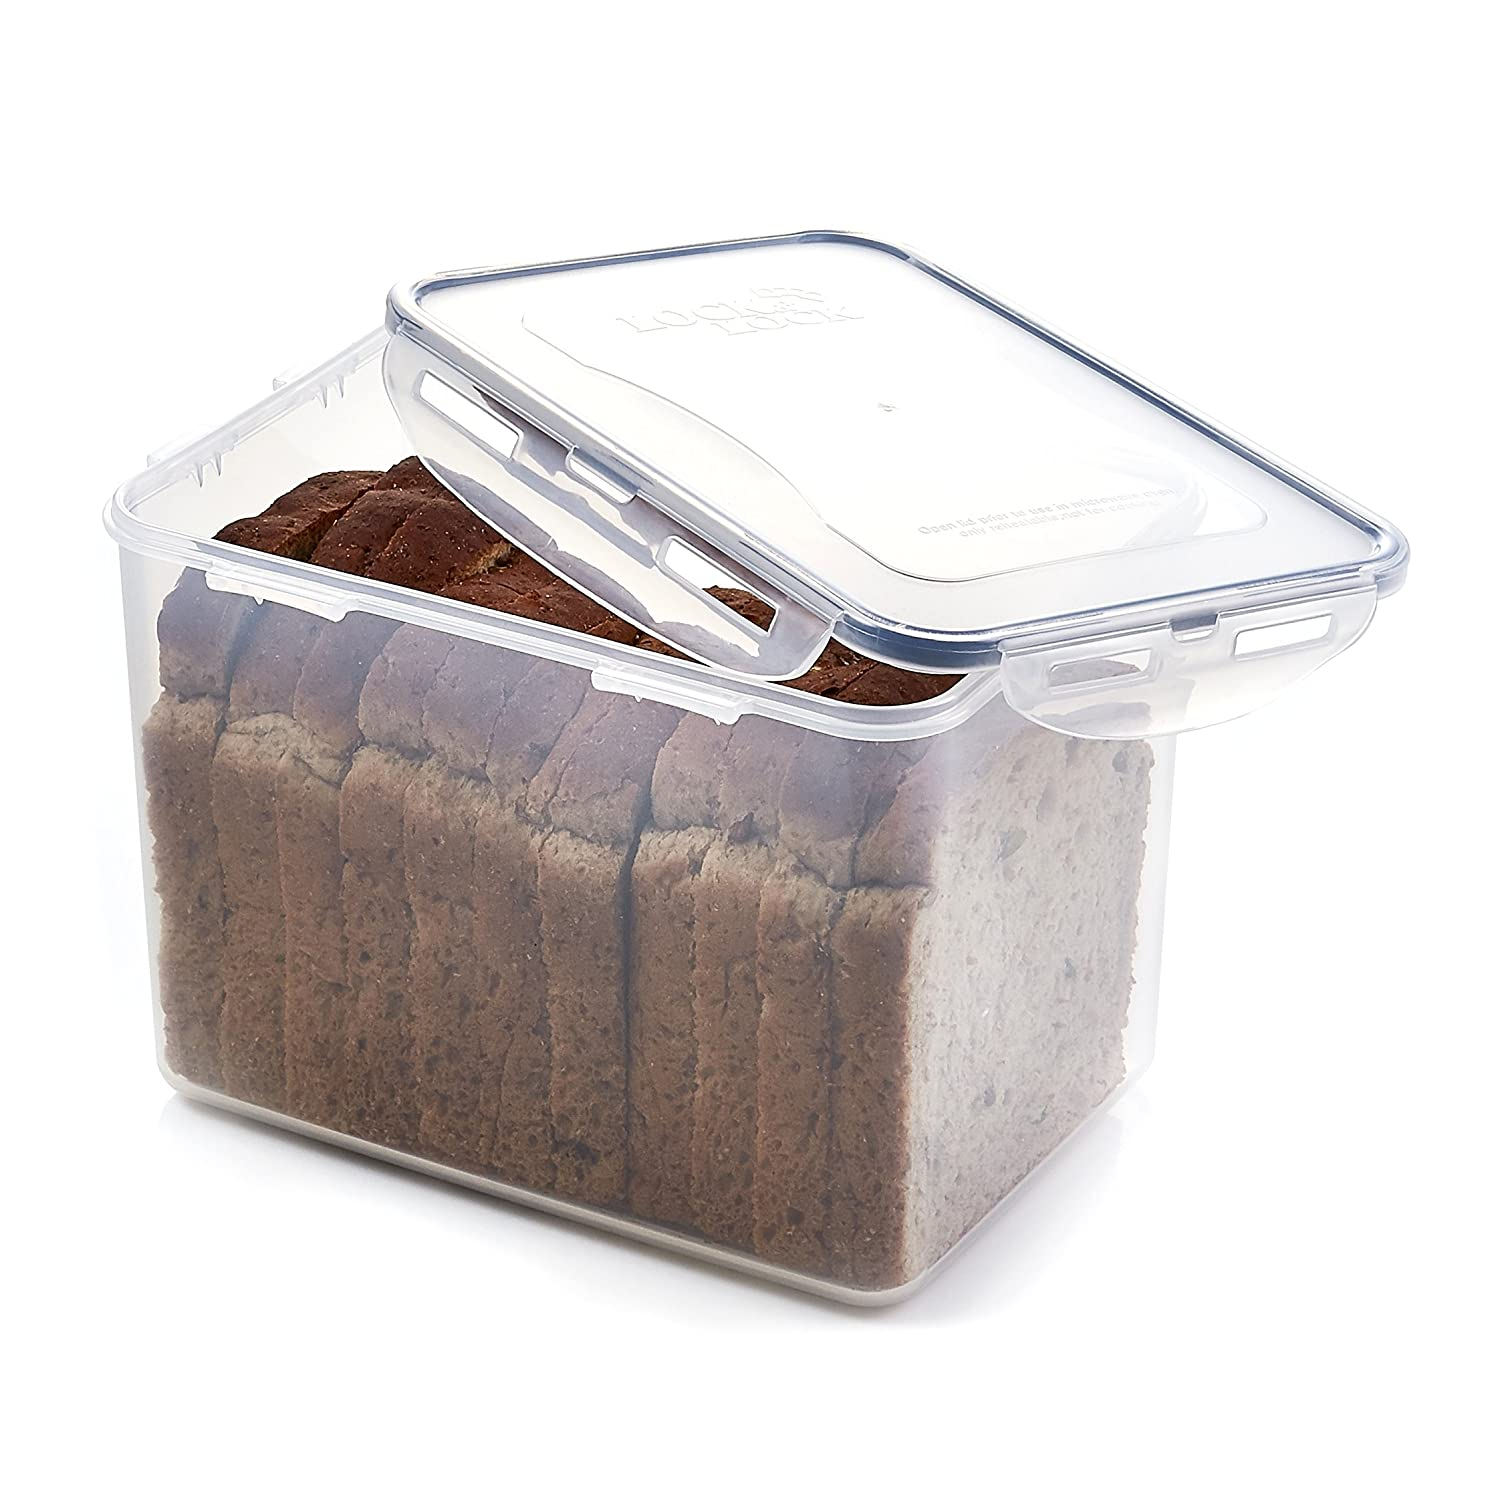 LOCK & LOCK Airtight Rectangular Tall Food Storage Container 131.87-oz / 16.48-cup